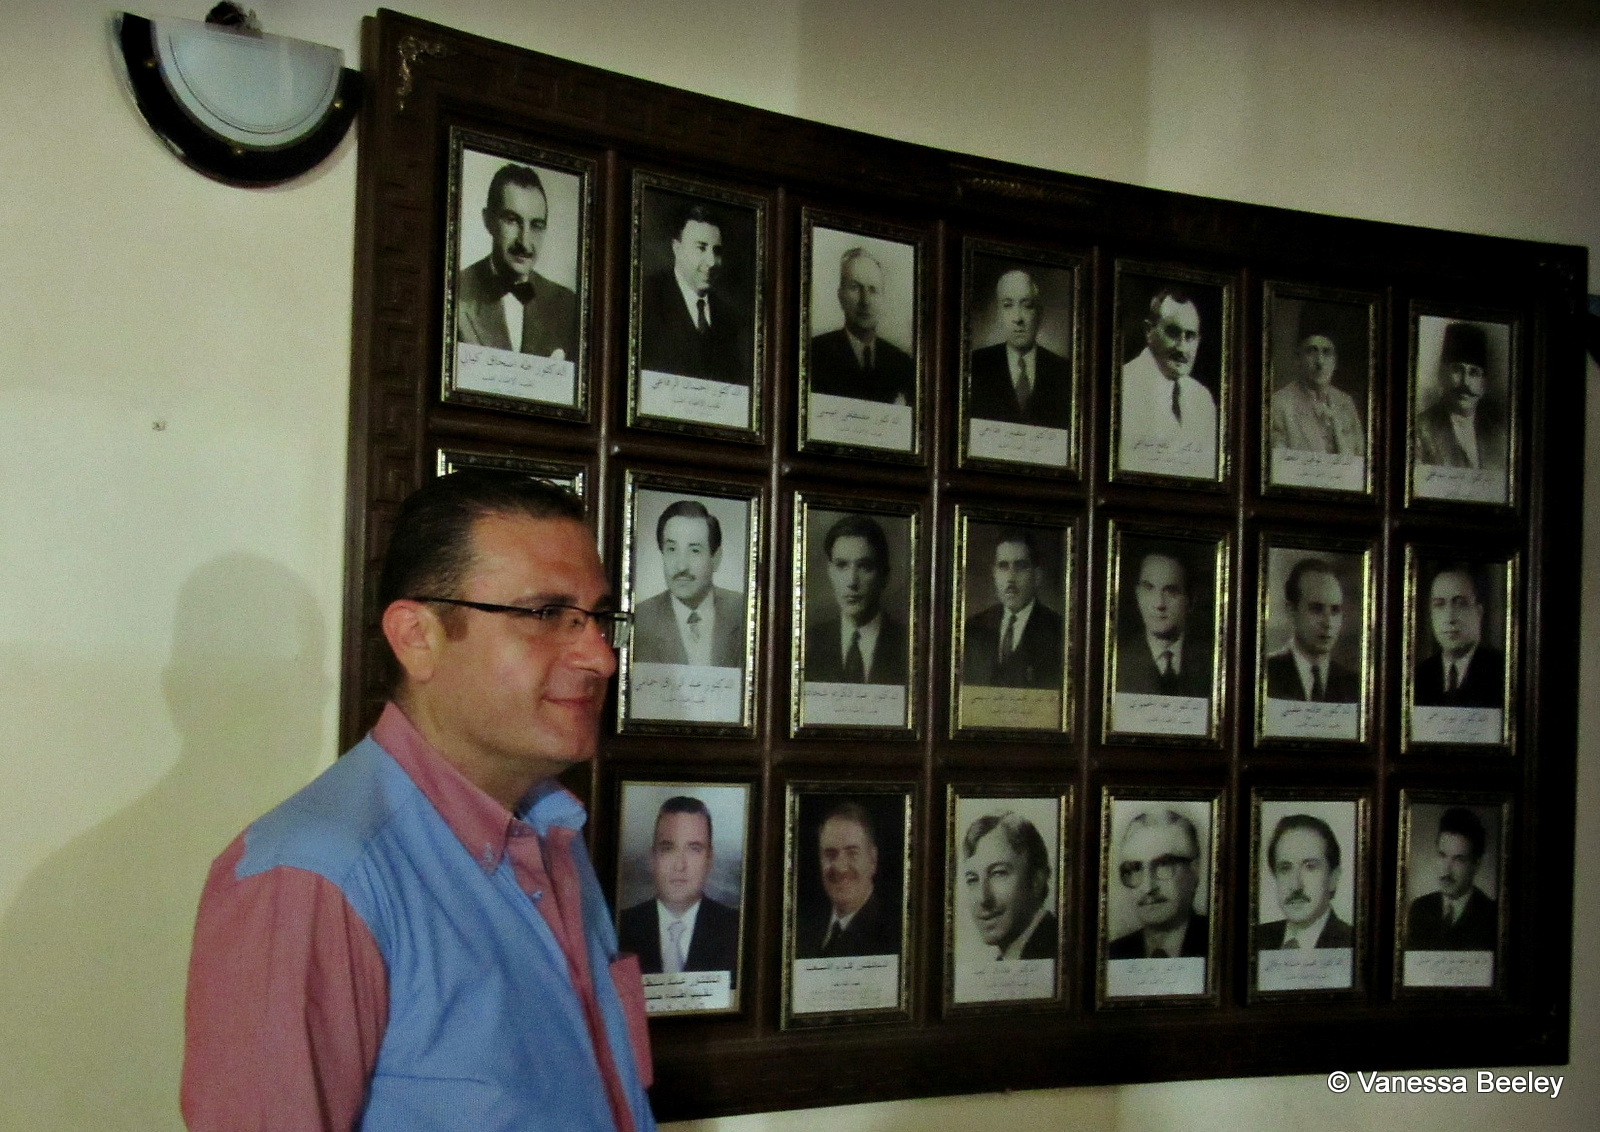 Dr. Zahar Buttal, director of the Aleppo Medical Association, standing next to photos of previous directors at the Aleppo Medical Association building. (Photo by Vanessa Beeley)